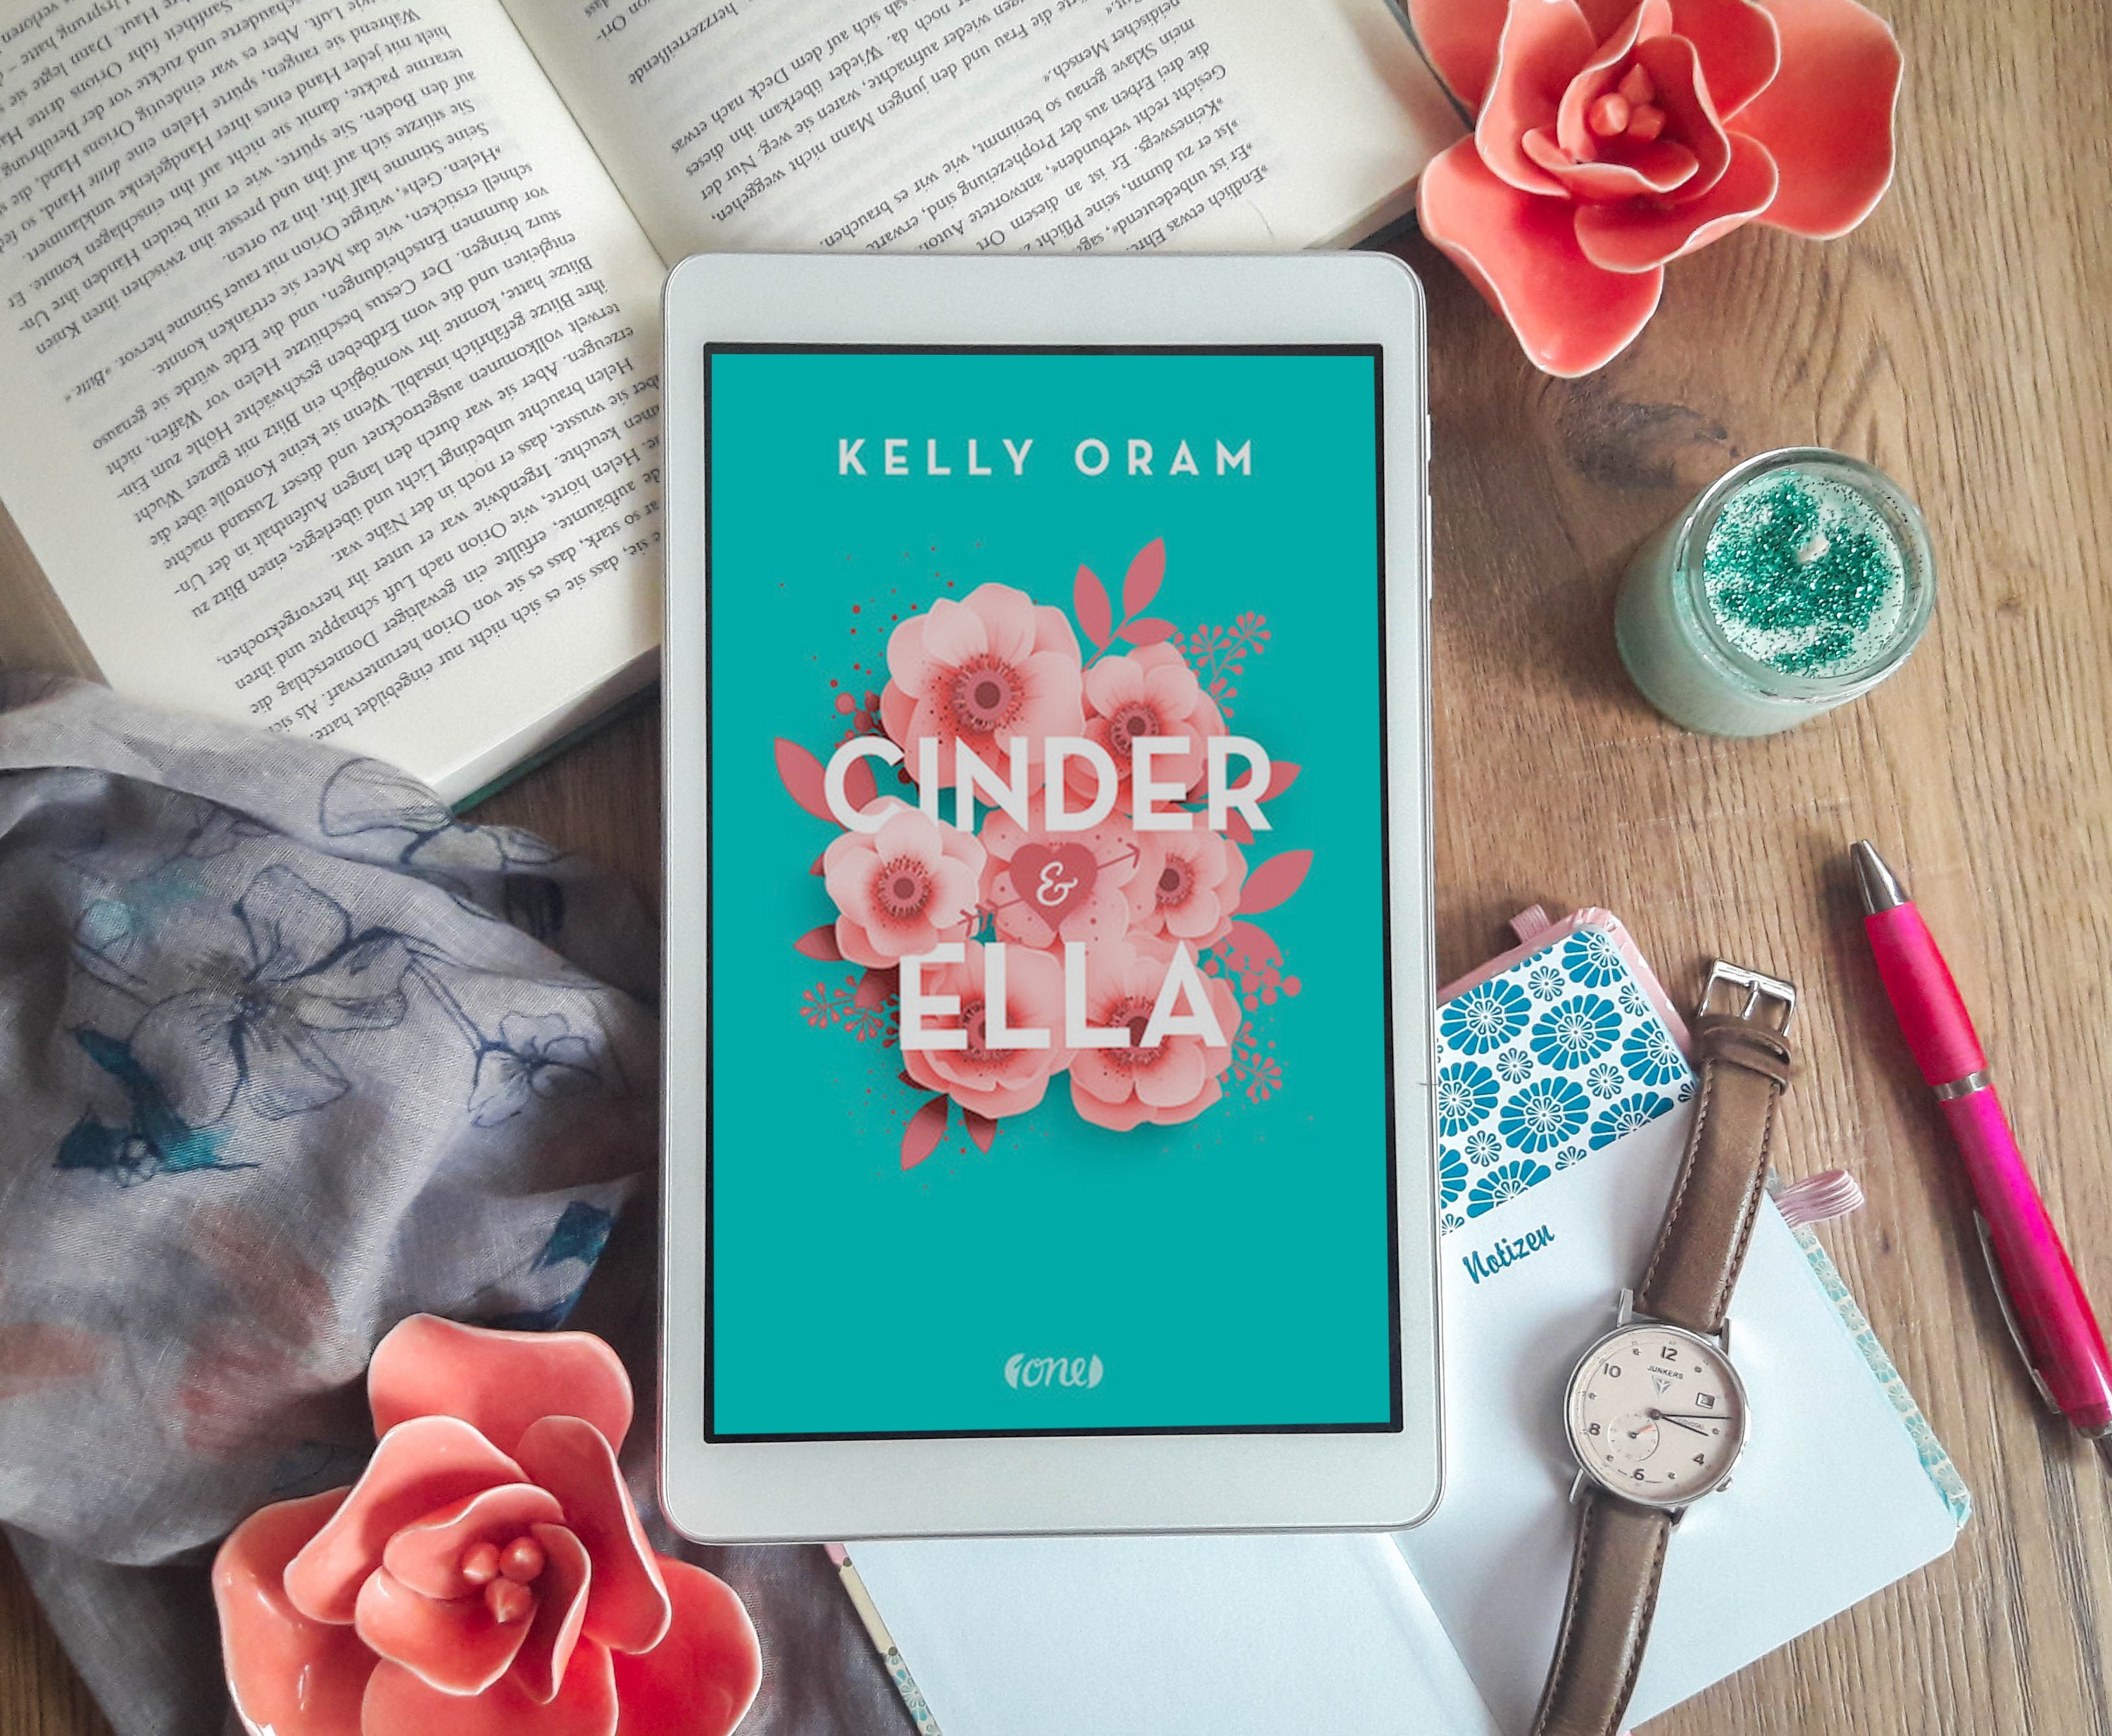 Cinder & Ella – Kelly Oram graphic